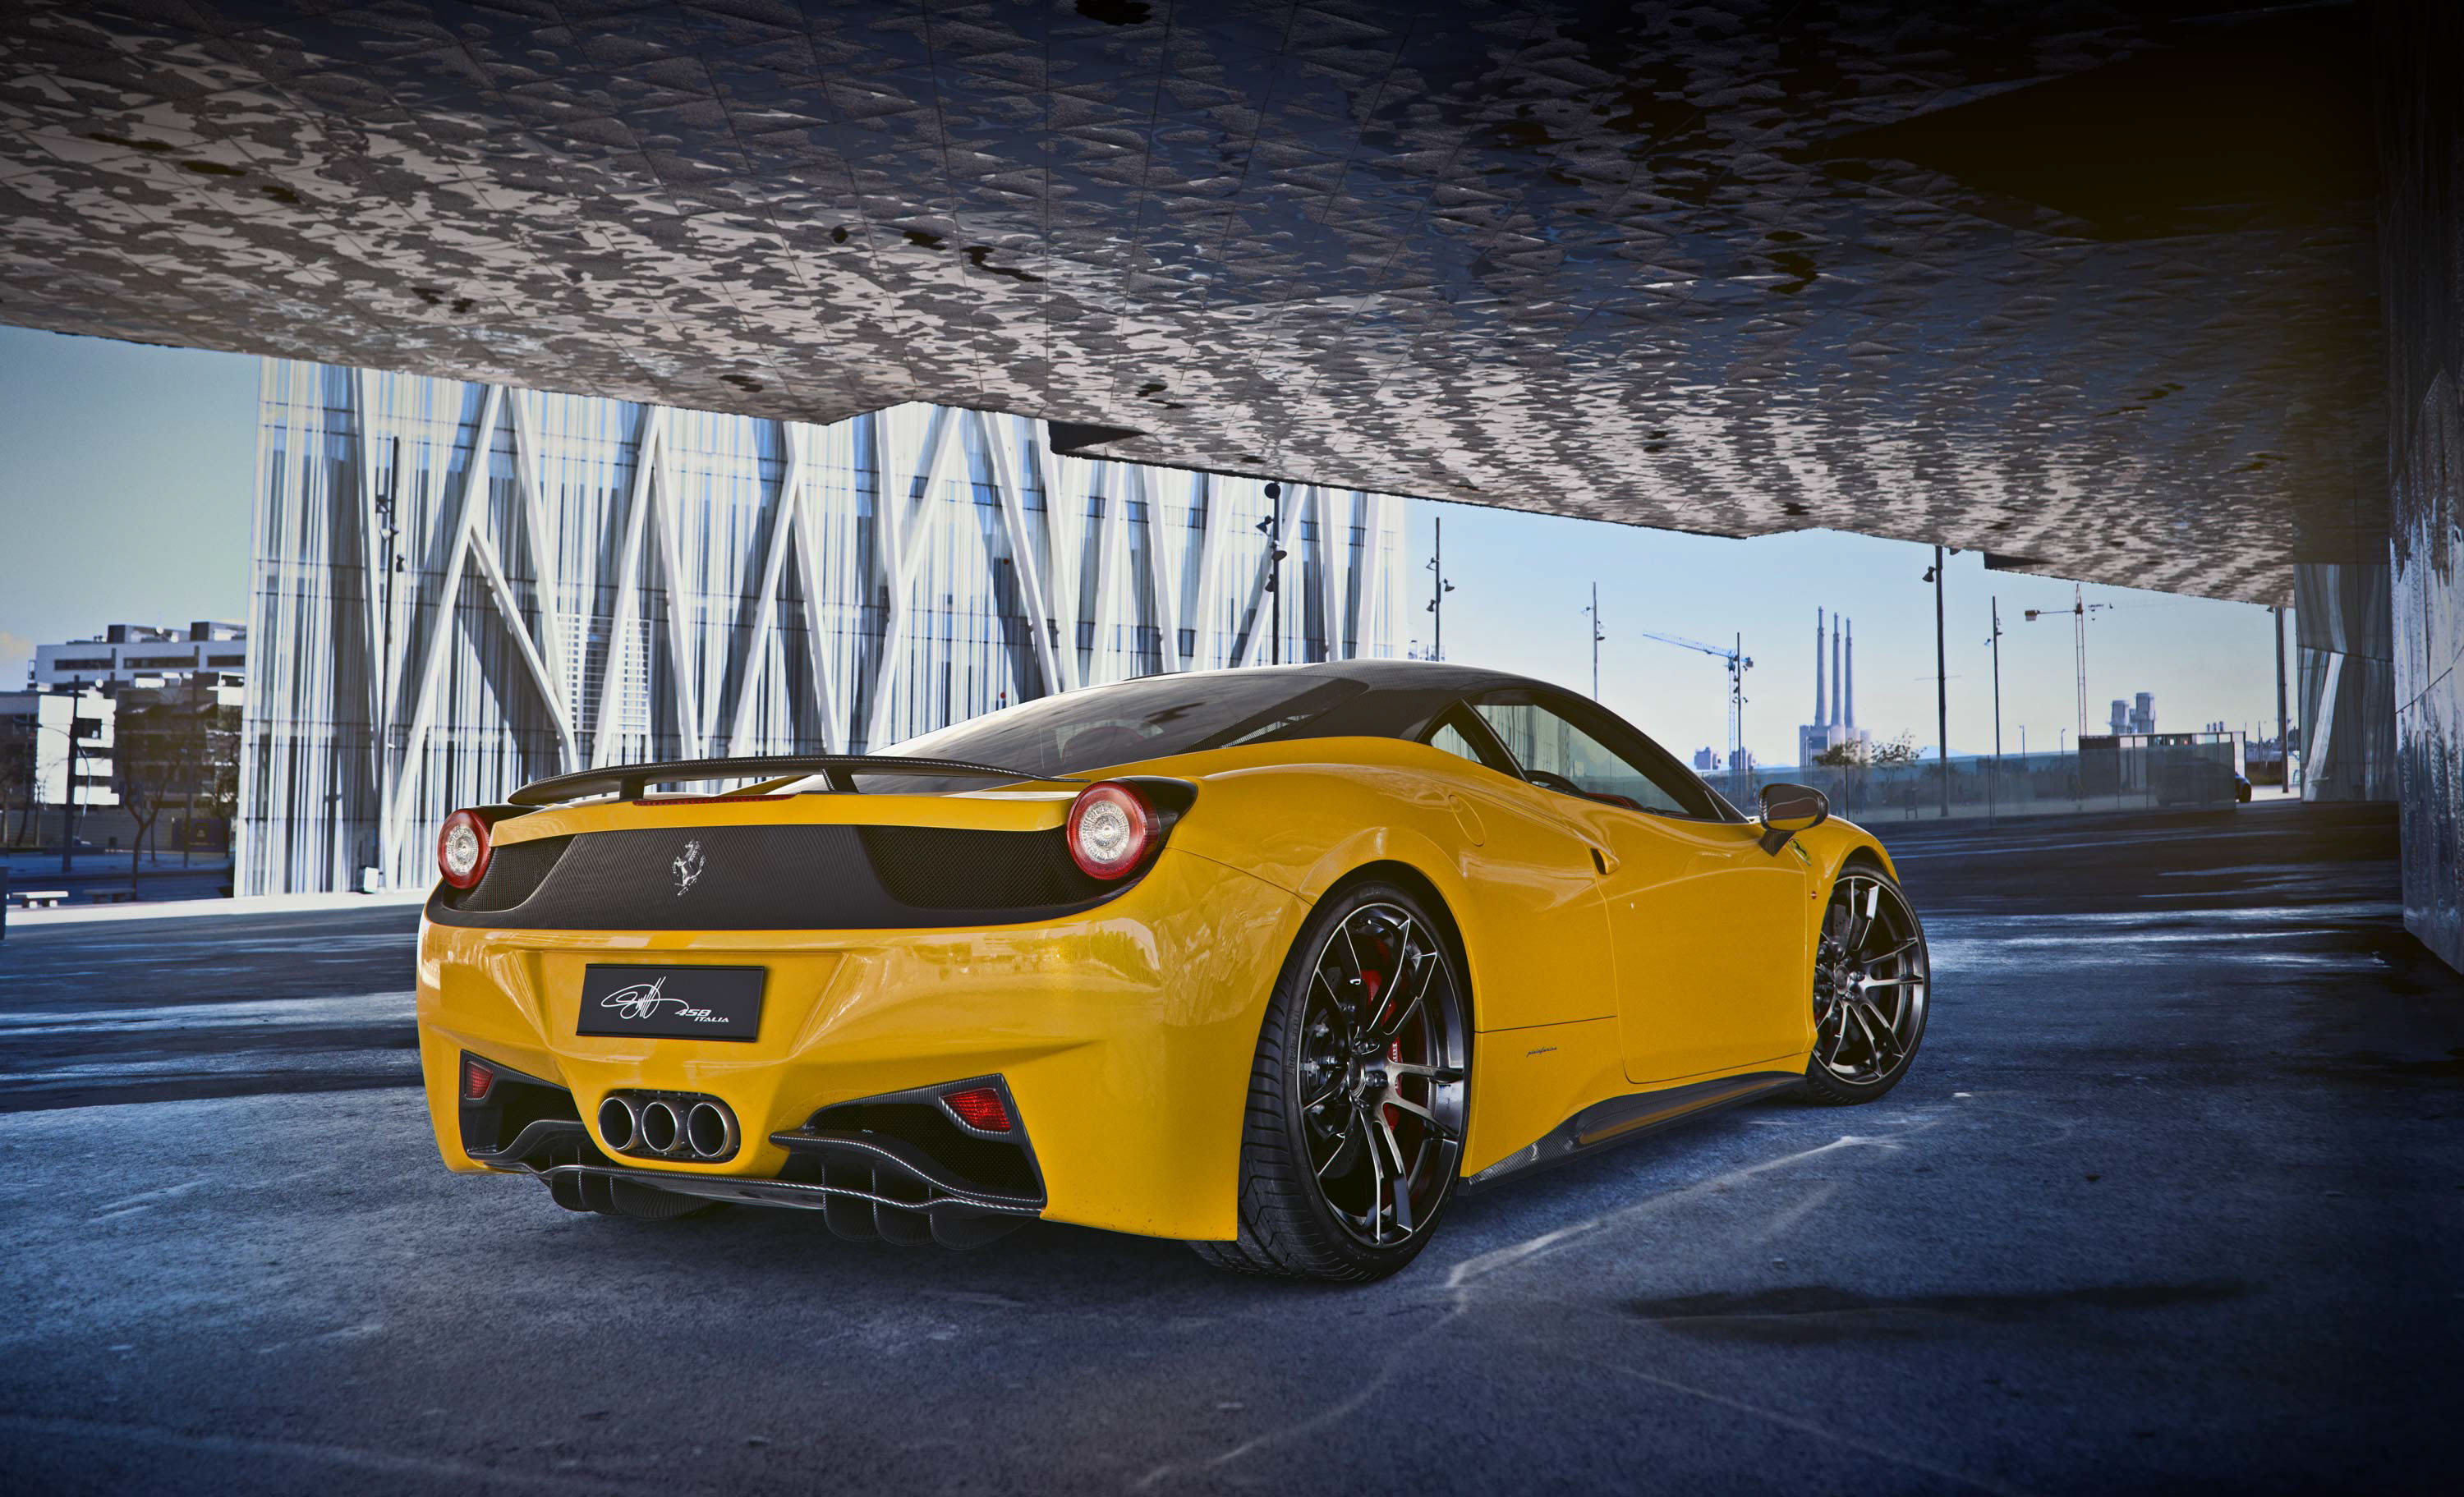 1366x768 Ferrari 458 Italia Yellow 2018 1366x768 Resolution Hd 4k Wallpapers Images Backgrounds Photos And Pictures